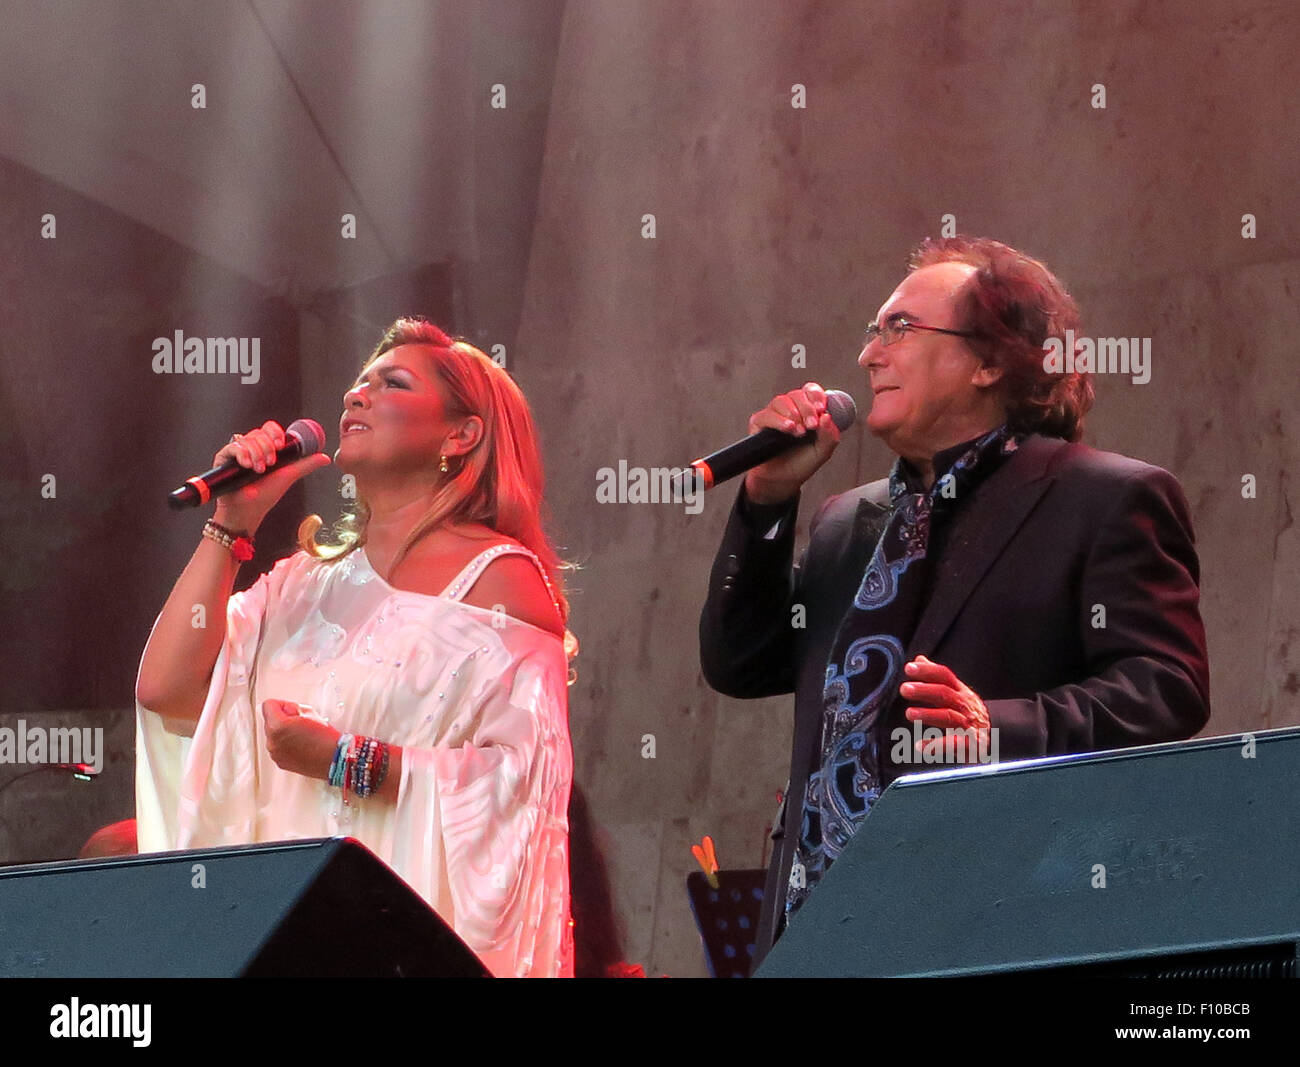 Albano Power Stockfotos & Albano Power Bilder - Alamy